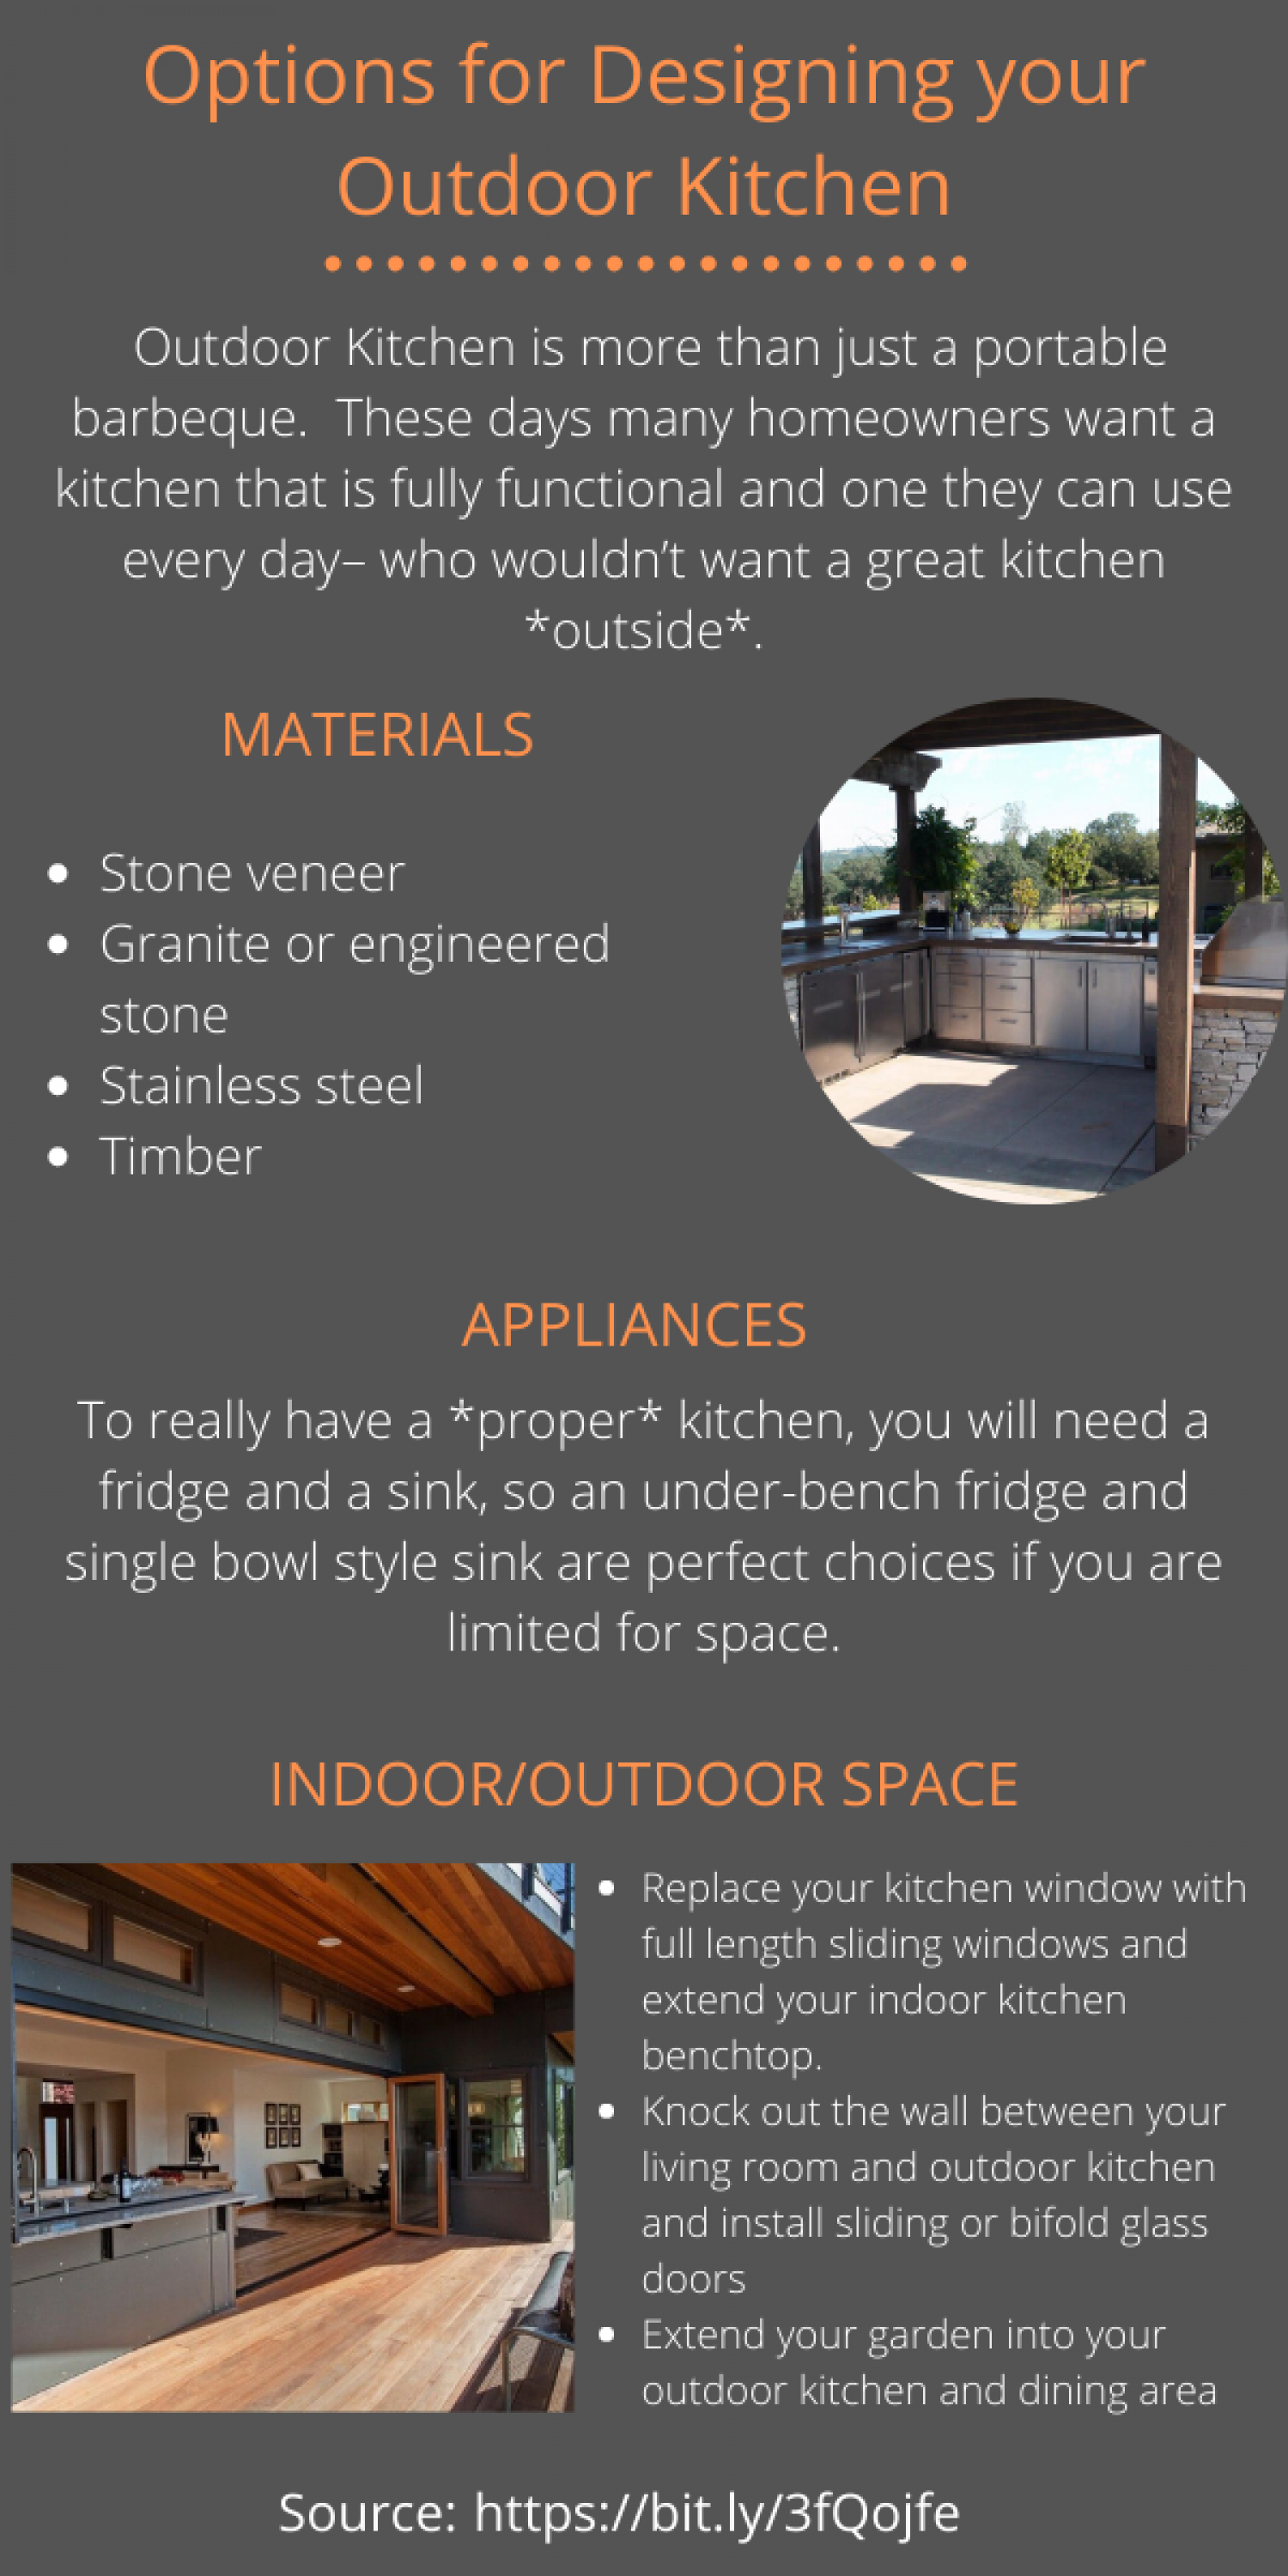 Tips to Designing an Outdoor Kitchen Infographic